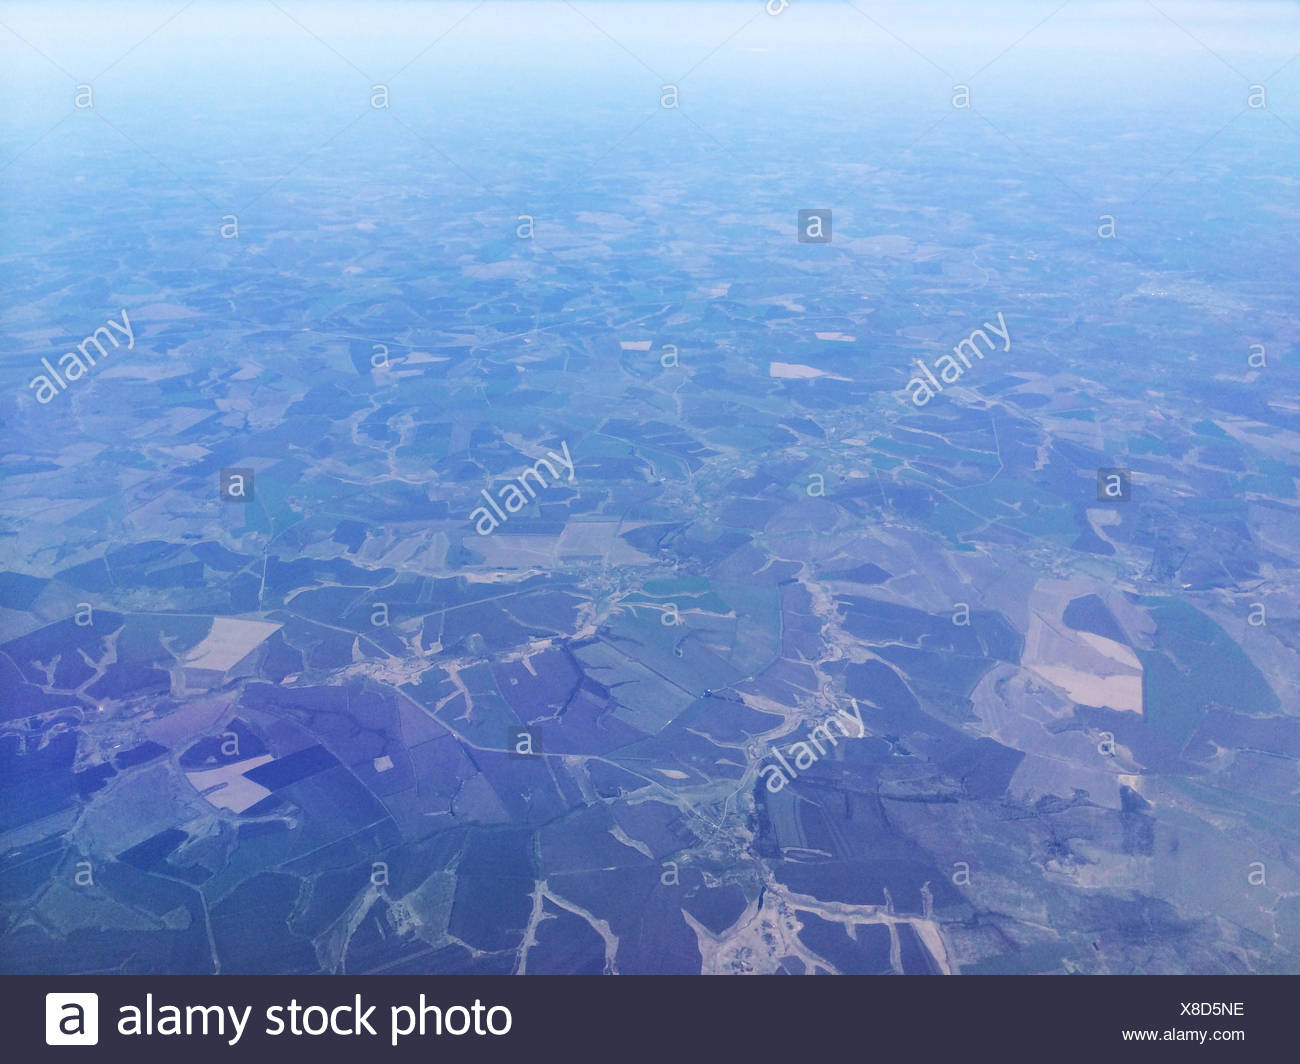 Aerial view of agricultural fields - Stock Image